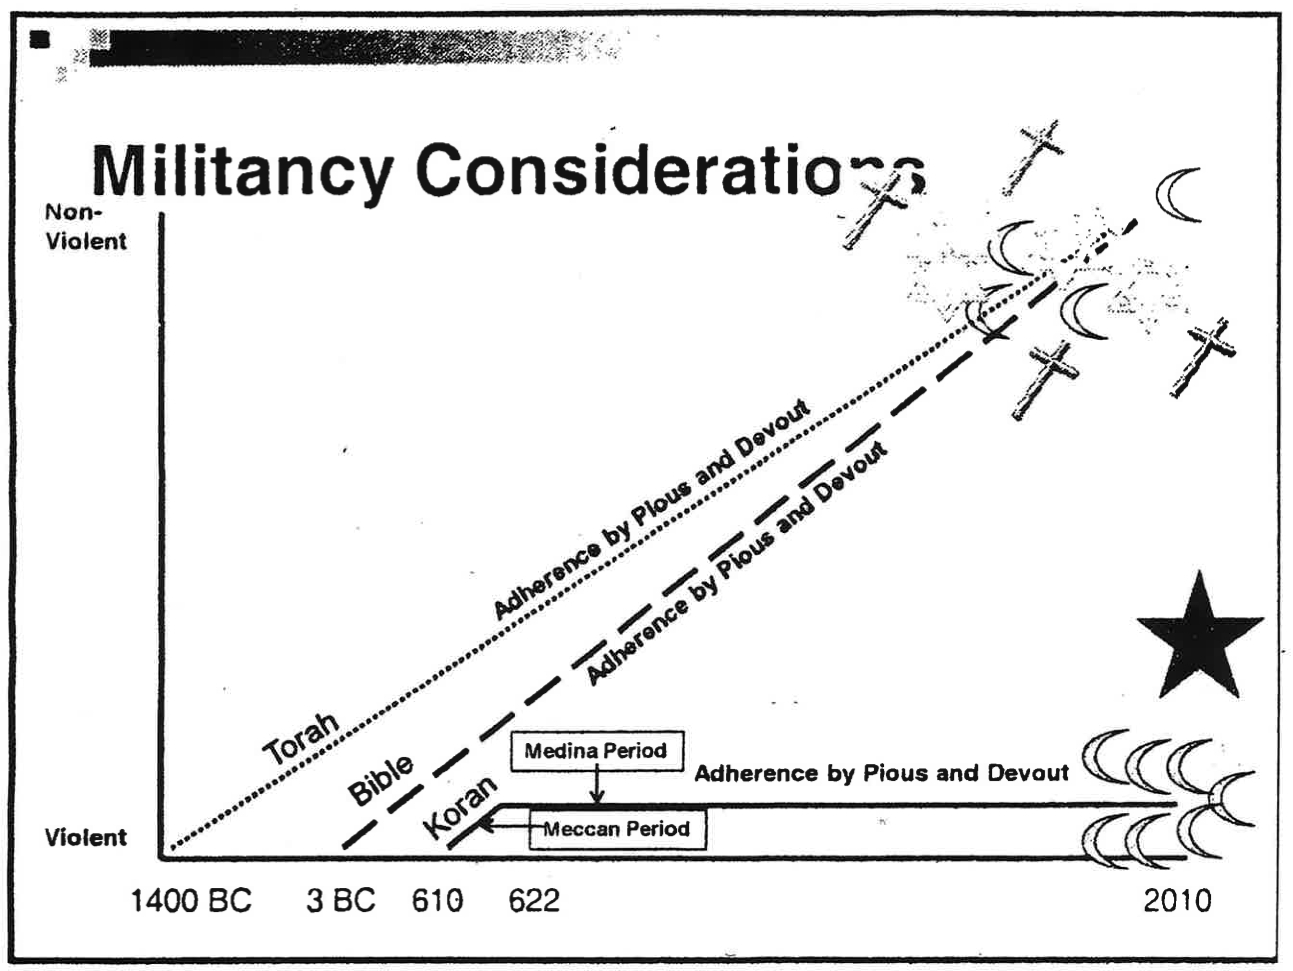 Muslims and Militancy Considerations of the FBI